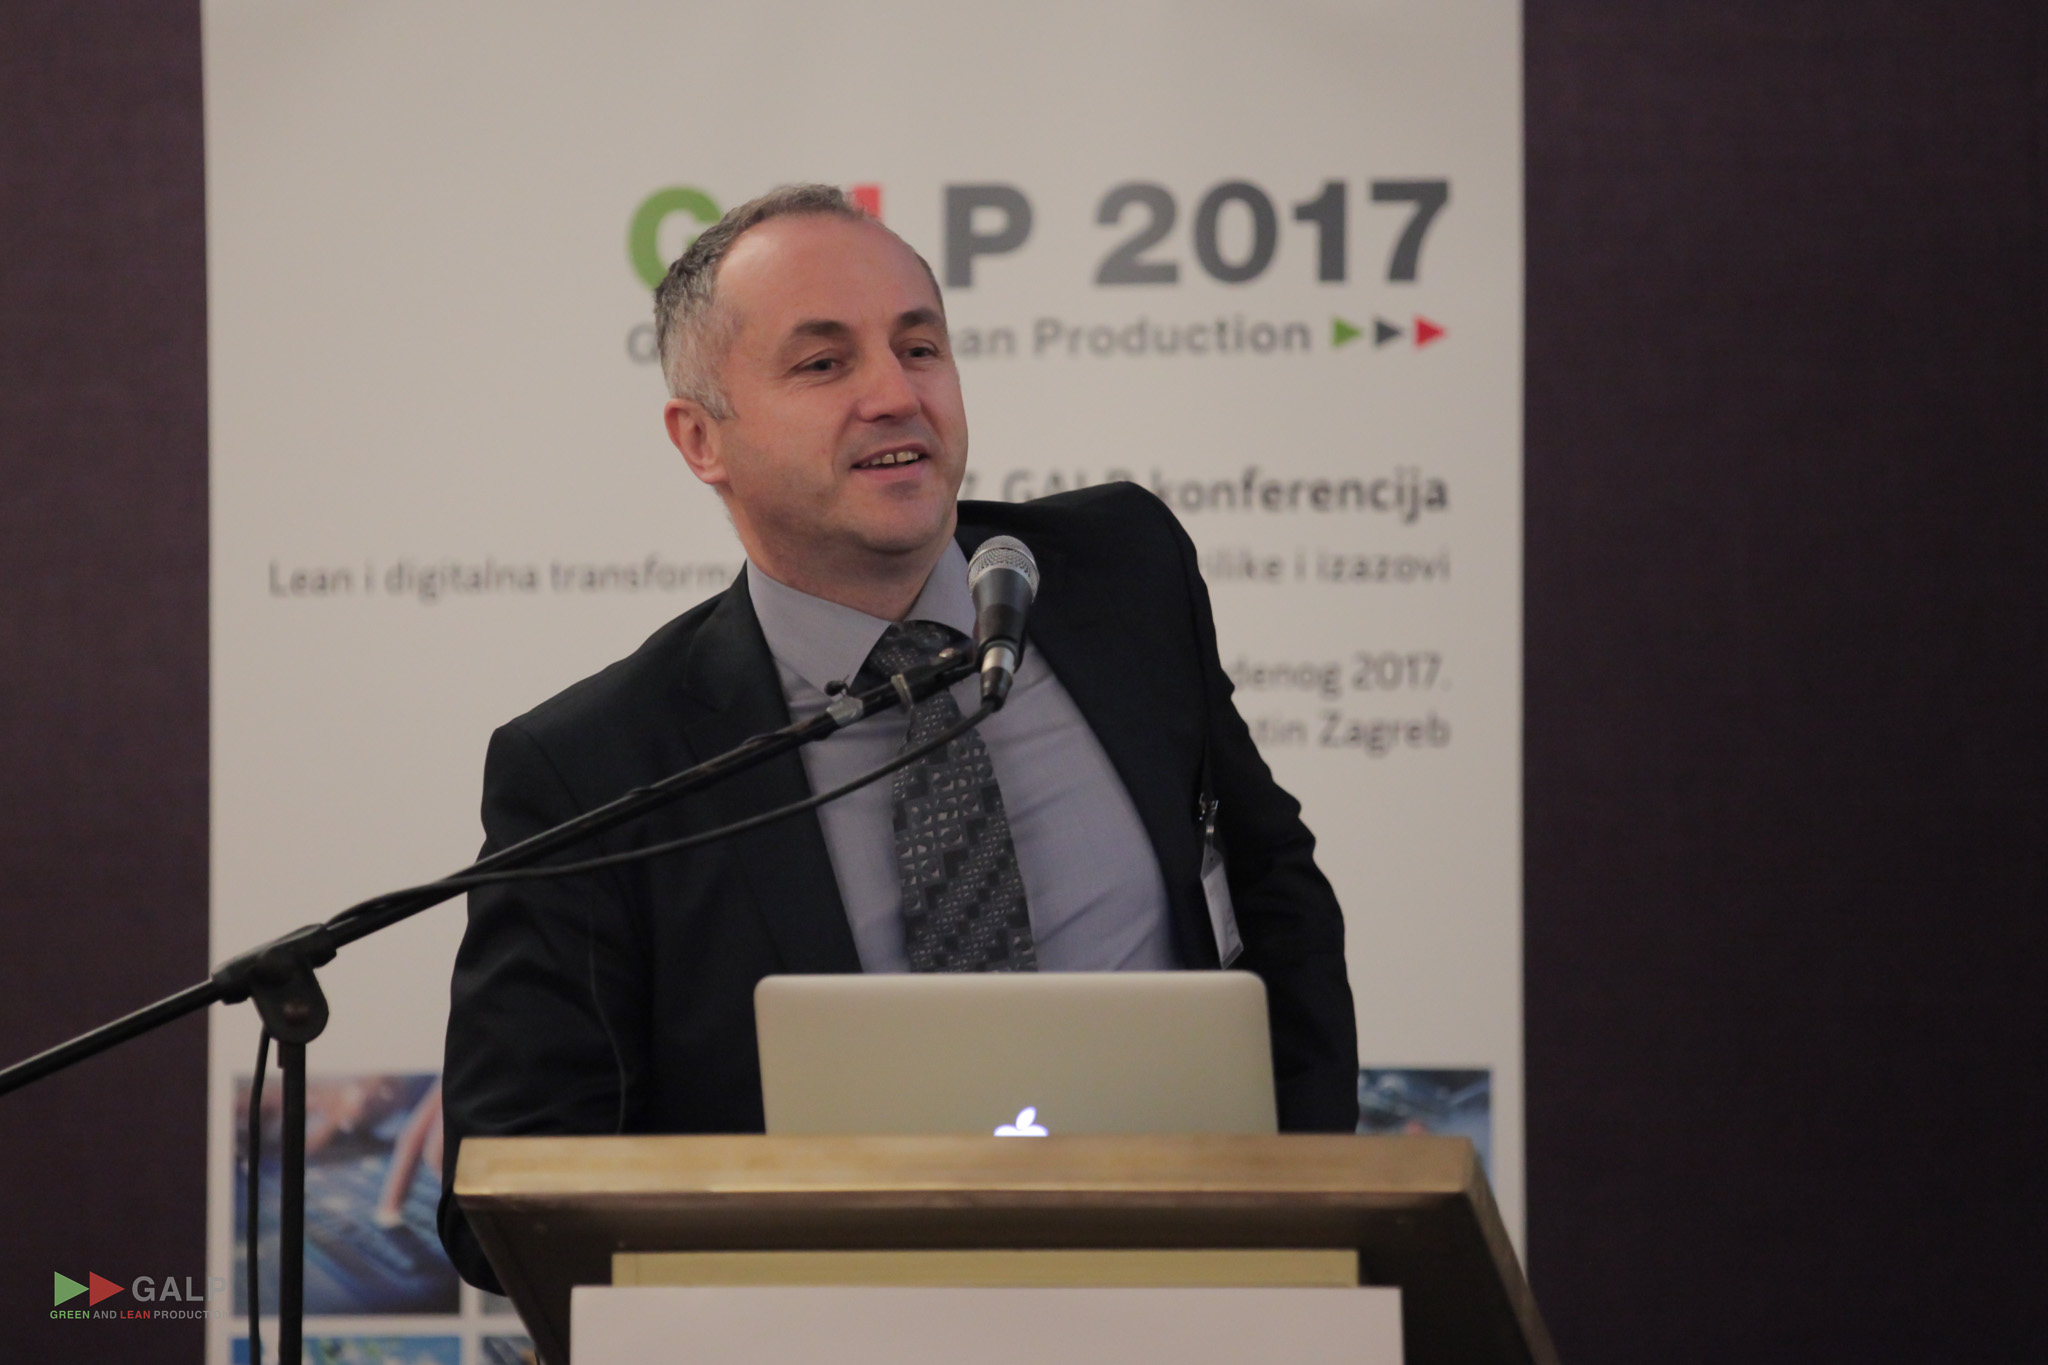 Green and Lean Production (GALP) 2017